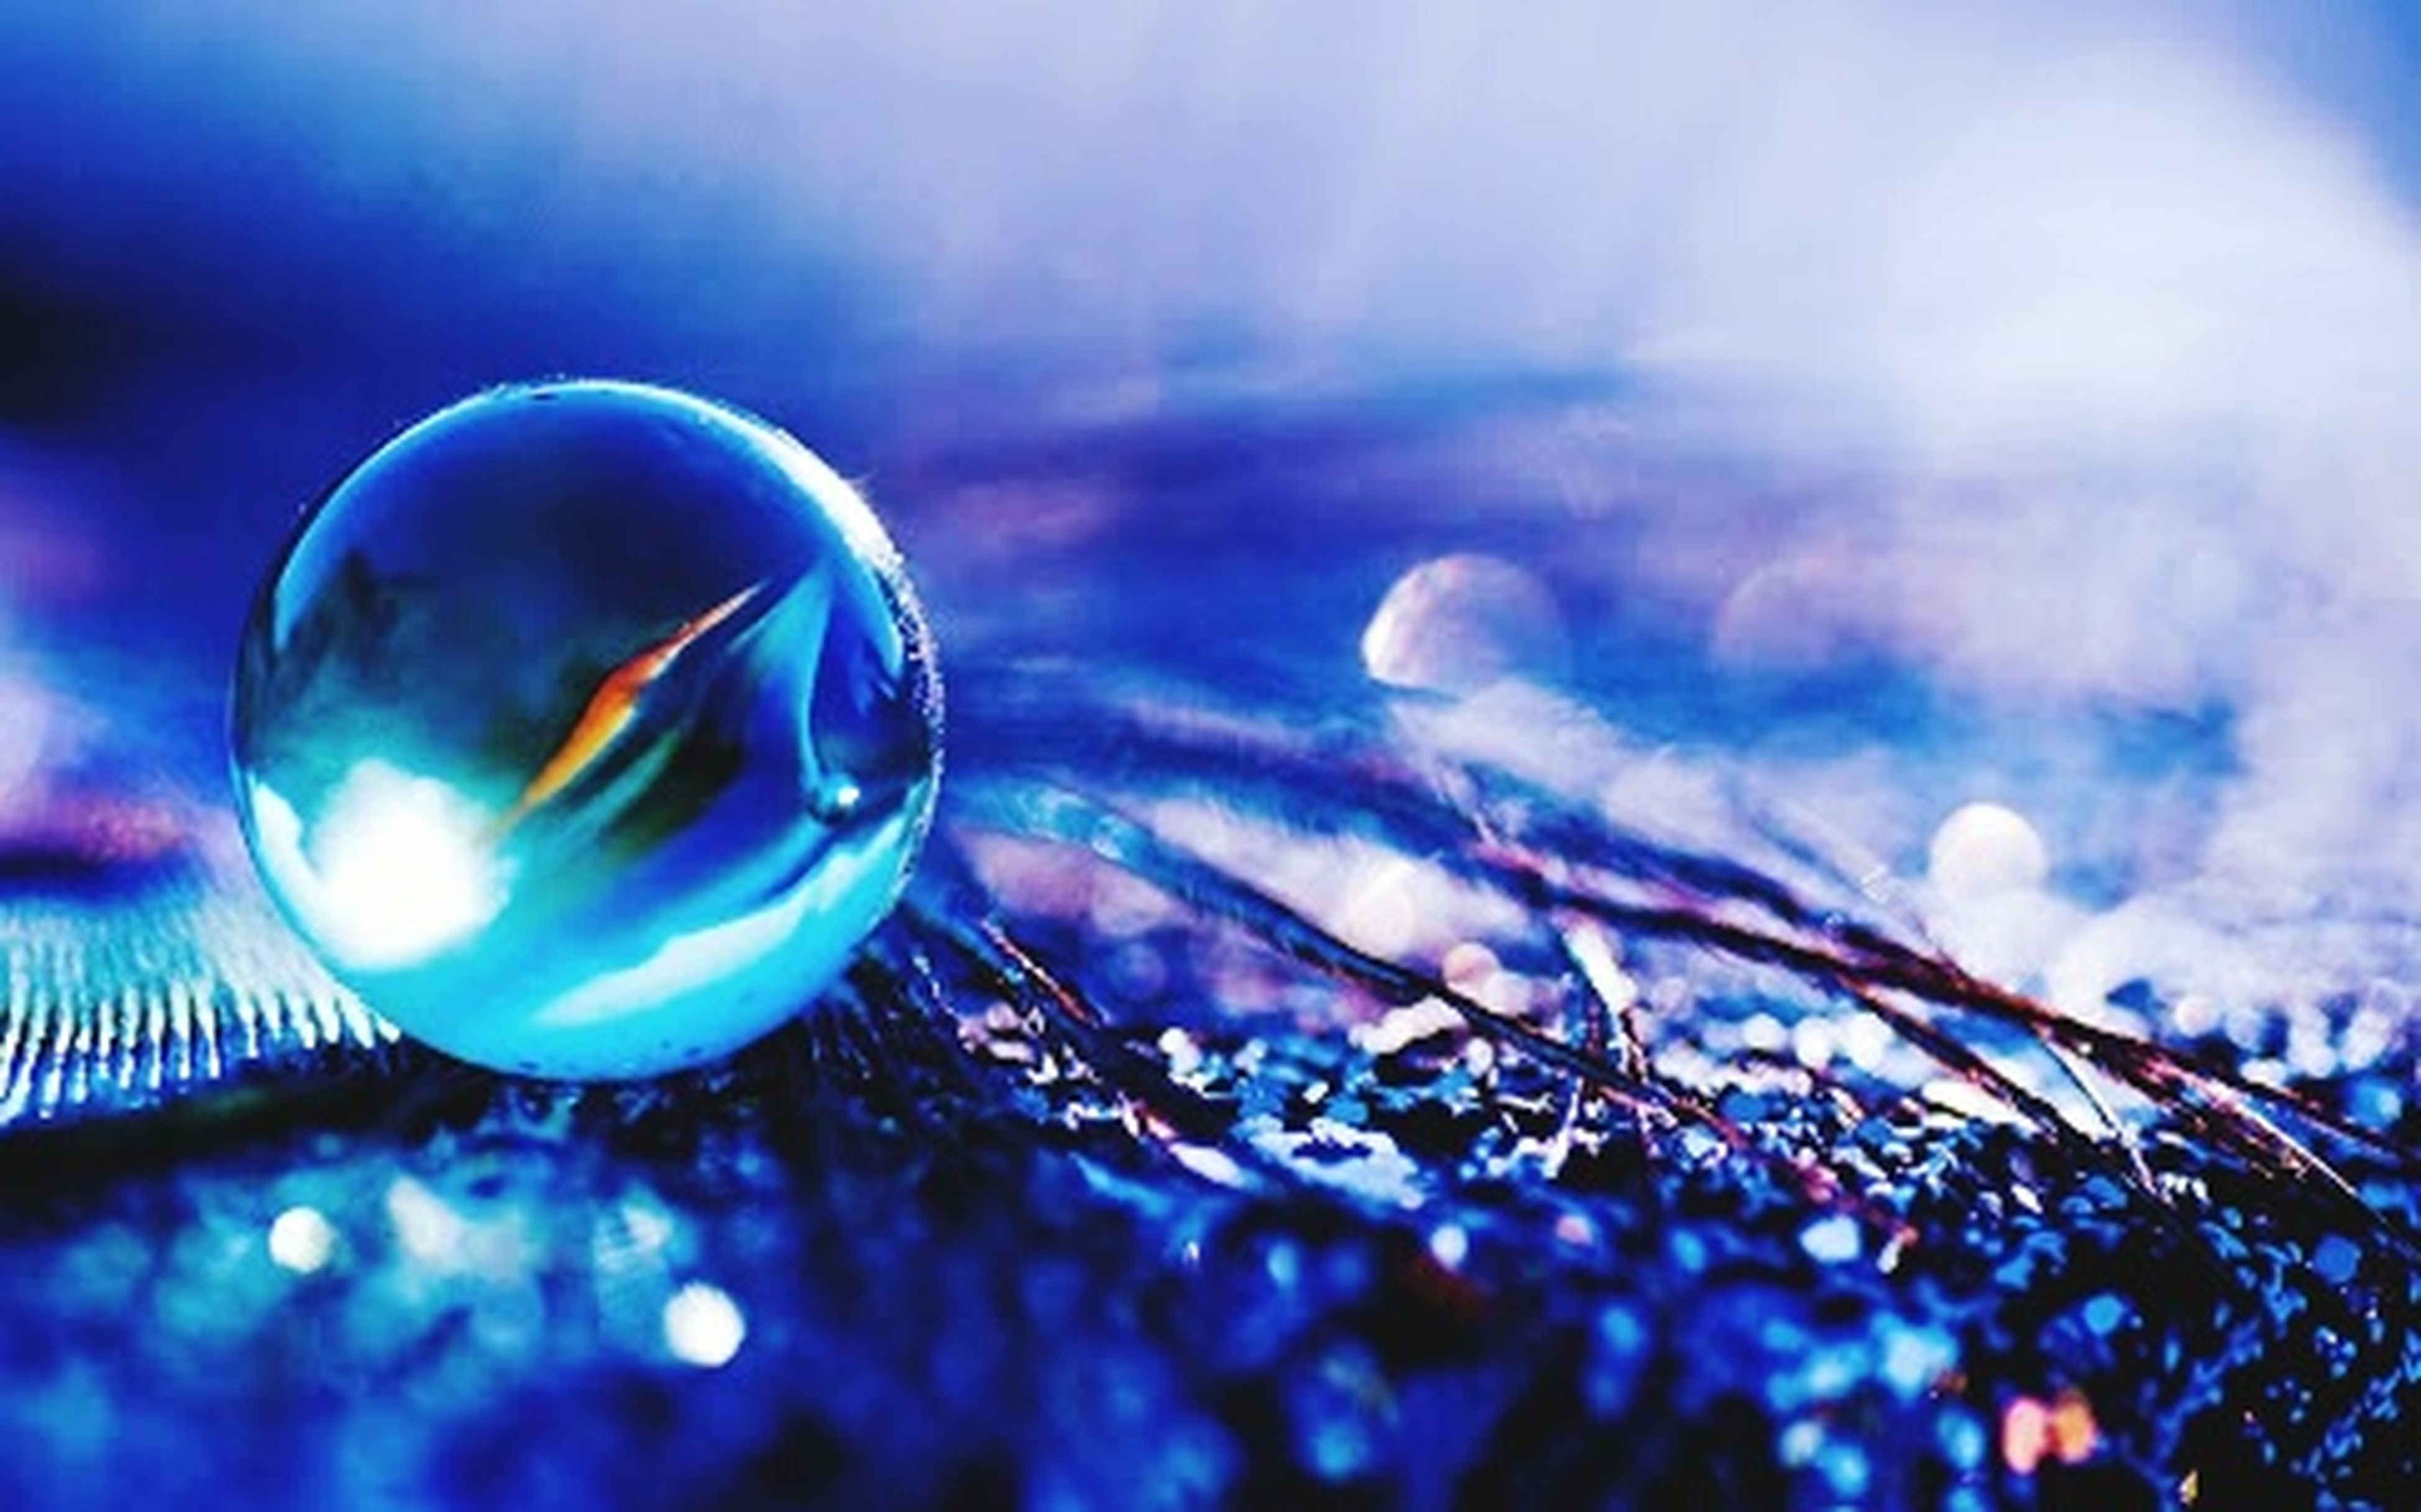 sphere, close-up, bubble, focus on foreground, transparent, fragility, selective focus, mid-air, glass - material, blue, circle, shiny, reflection, ball, lens flare, no people, nature, beauty in nature, outdoors, sky